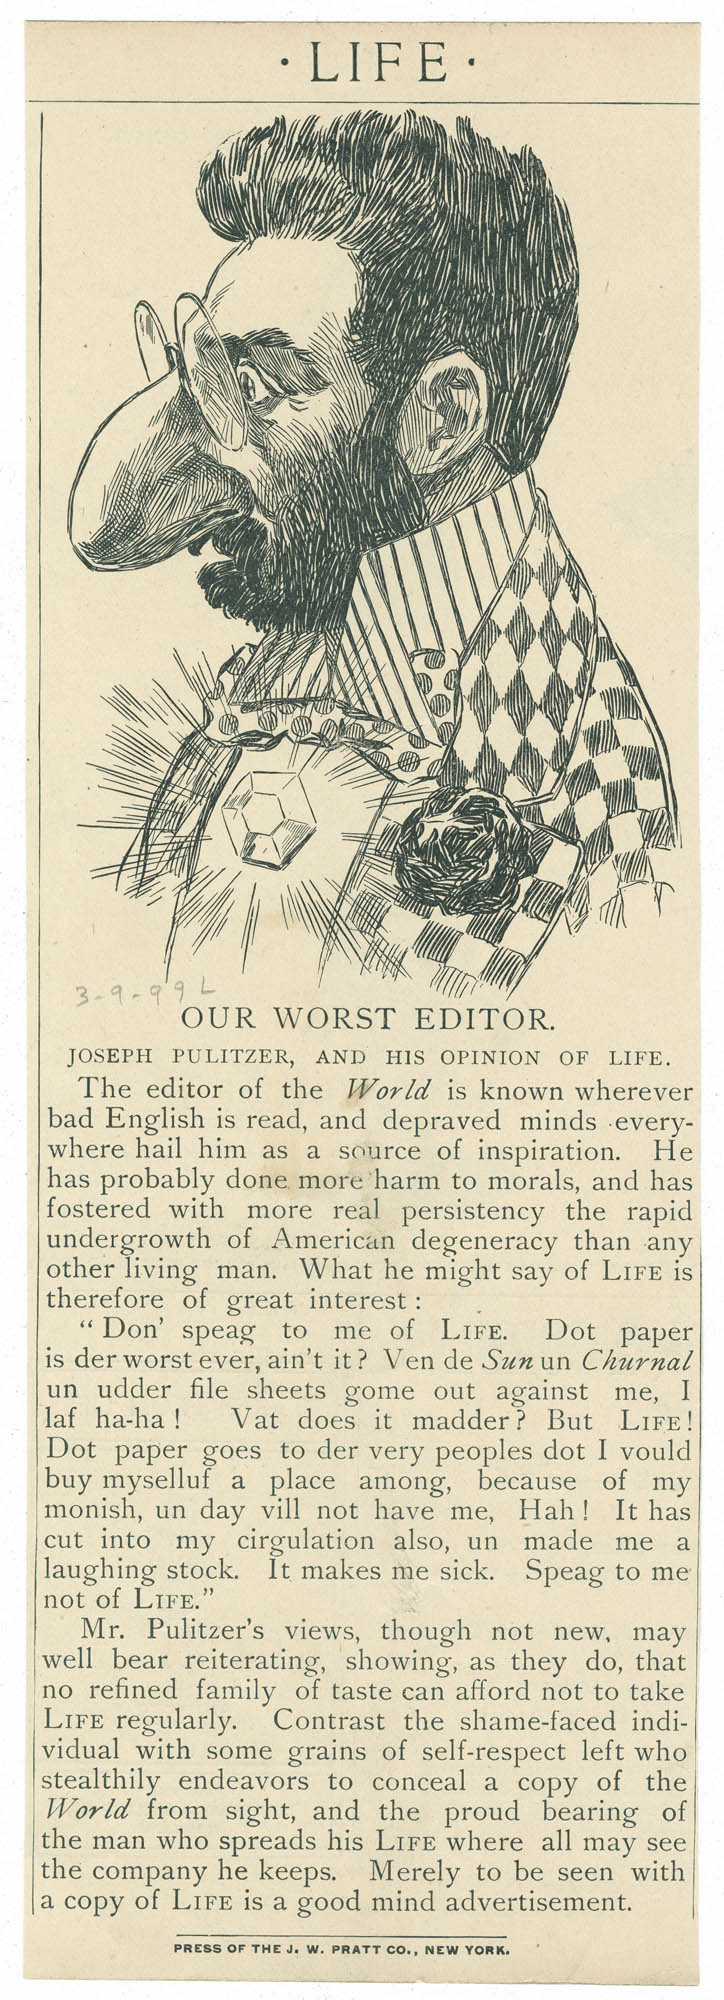 Our worst editor. Joseph Pulitzer, and his opinion of Life.